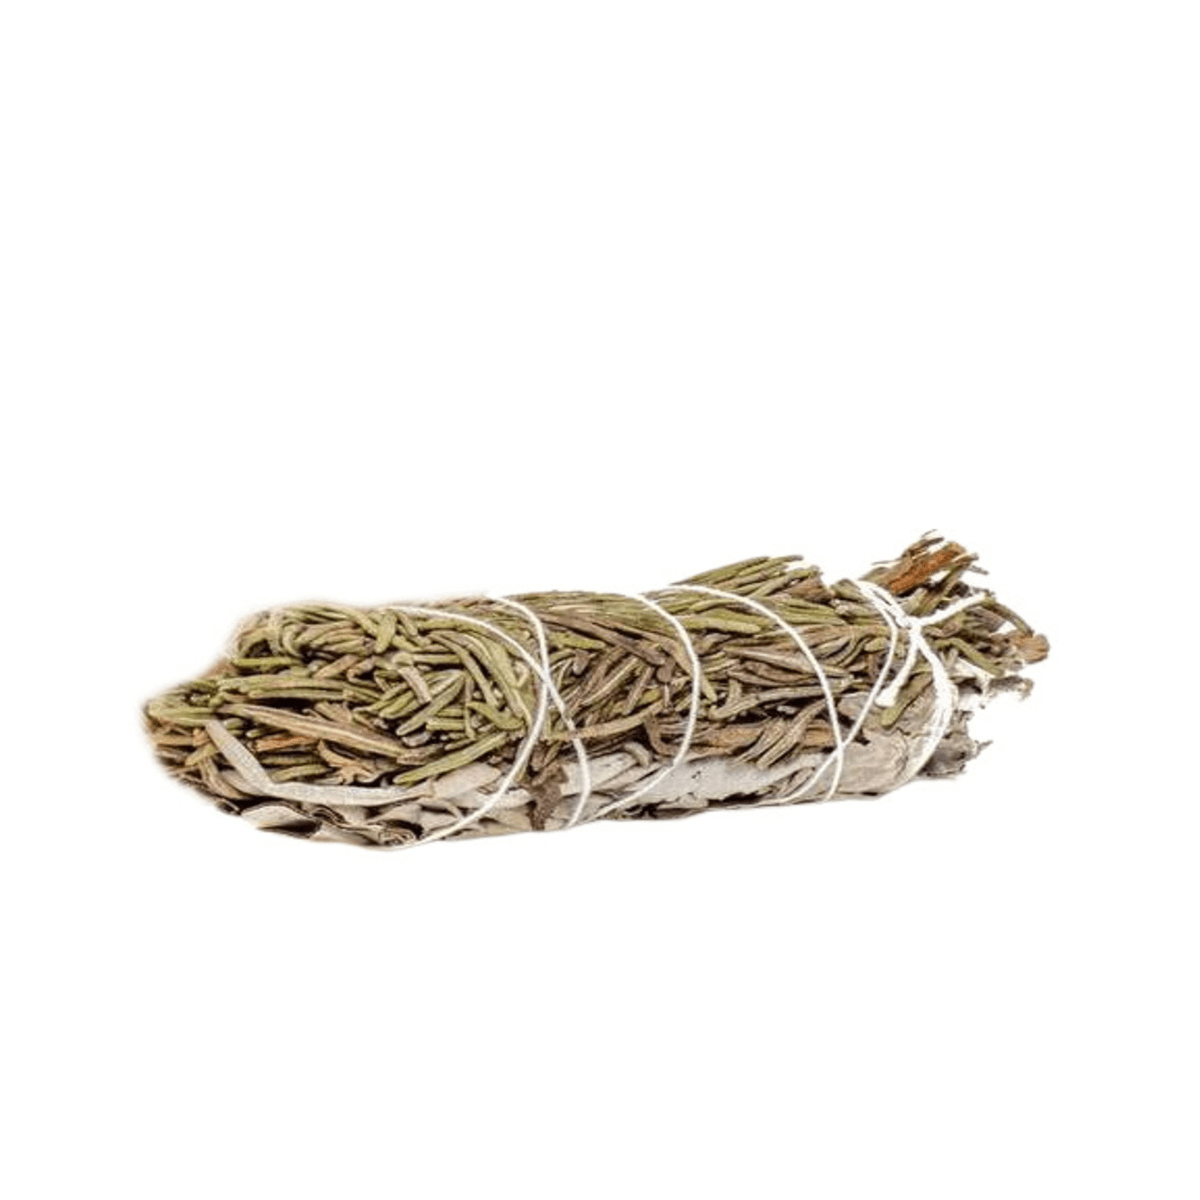 WHITE SAGE AND ROSEMARY SMUDGE STICK - Energy Wicks